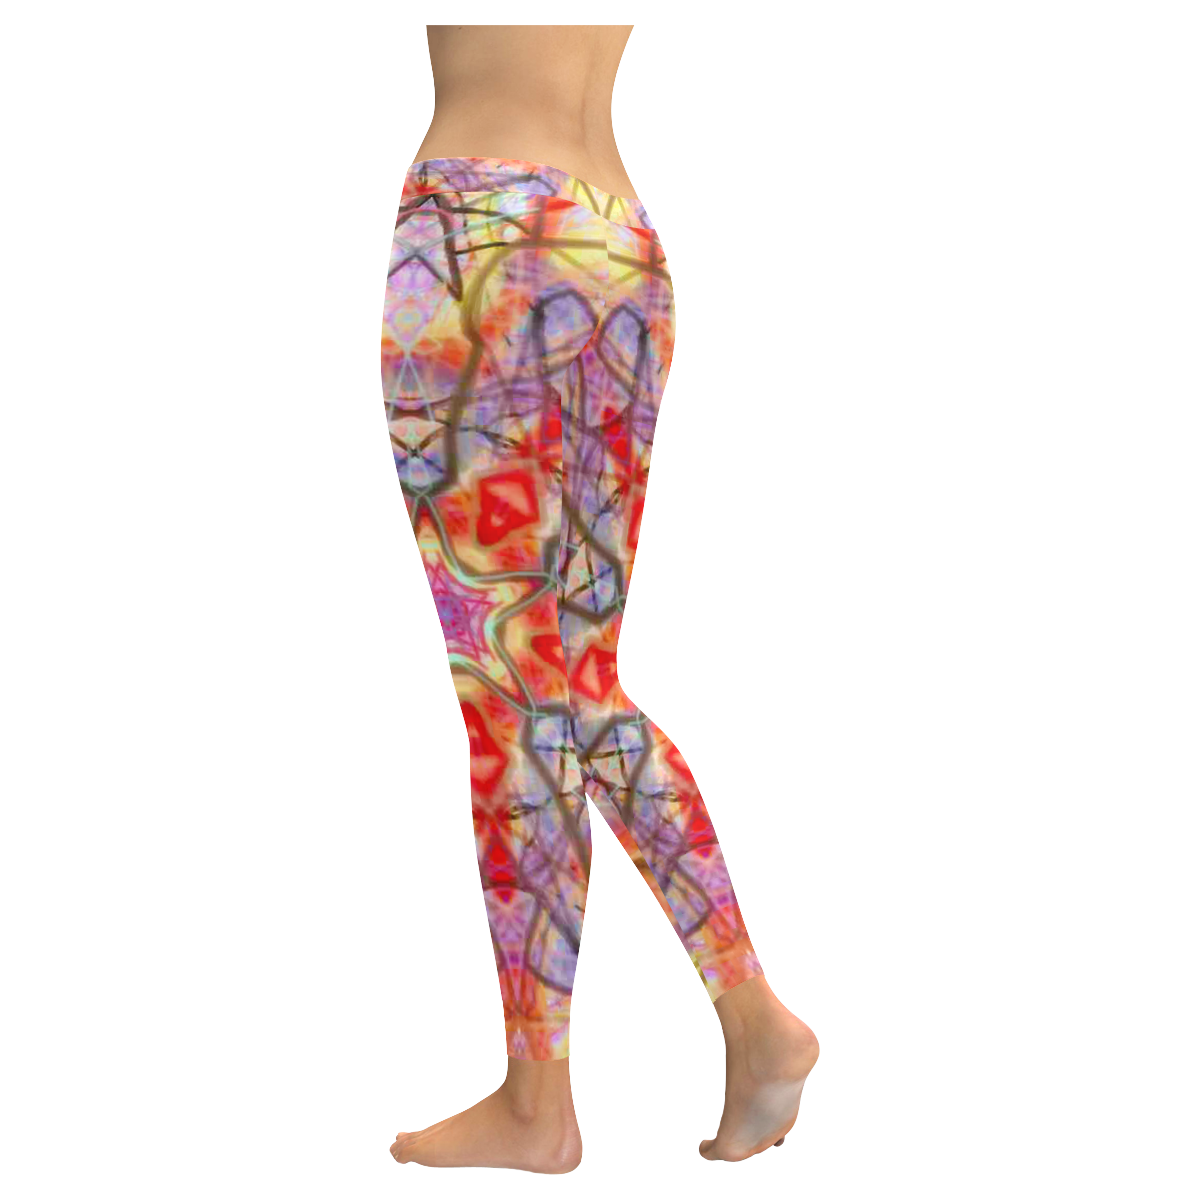 Thleudron Eidos Low Rise Leggings (Invisible Stitch) (Model L05)